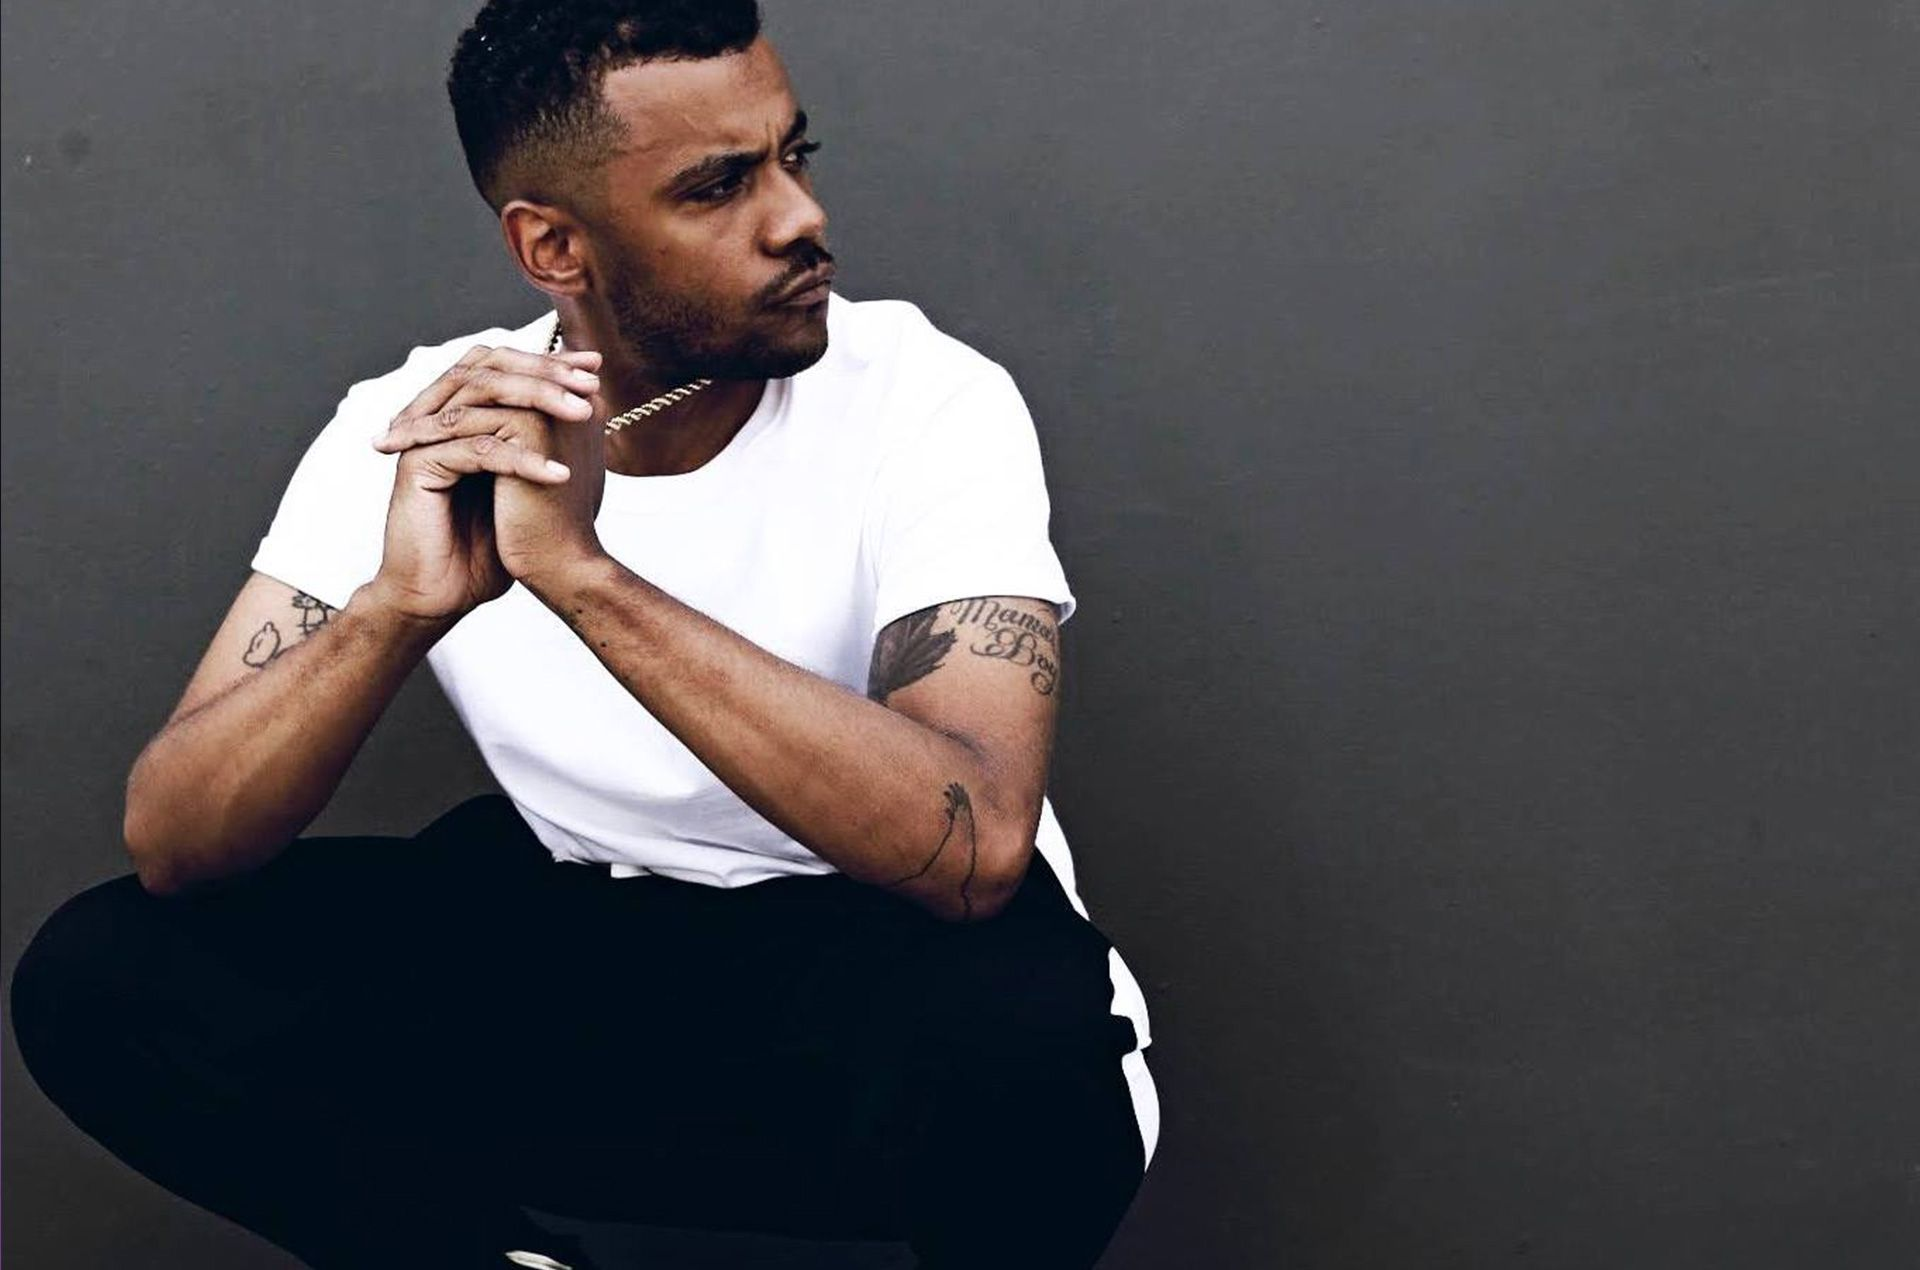 Jarod Joseph is a one that has never looked back!